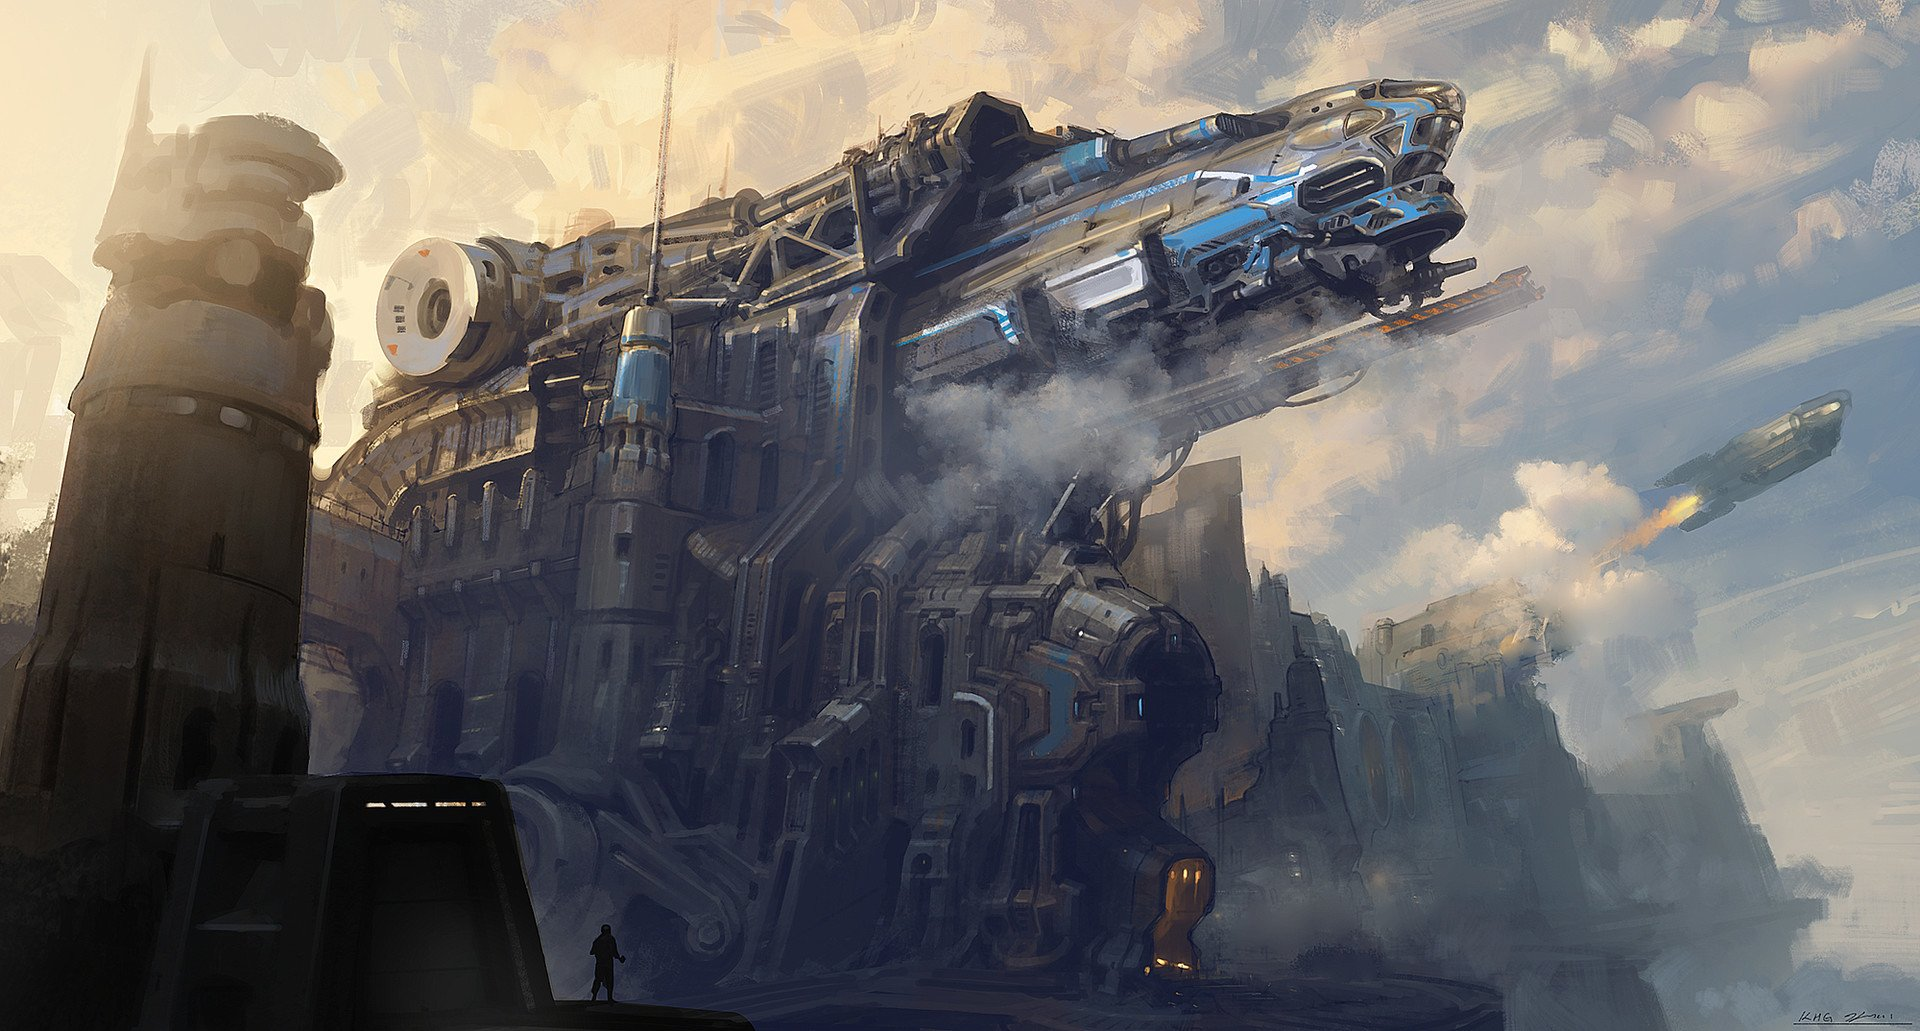 Sci Fi - Spaceship  Space Rocket Cannon Futuristic Wallpaper